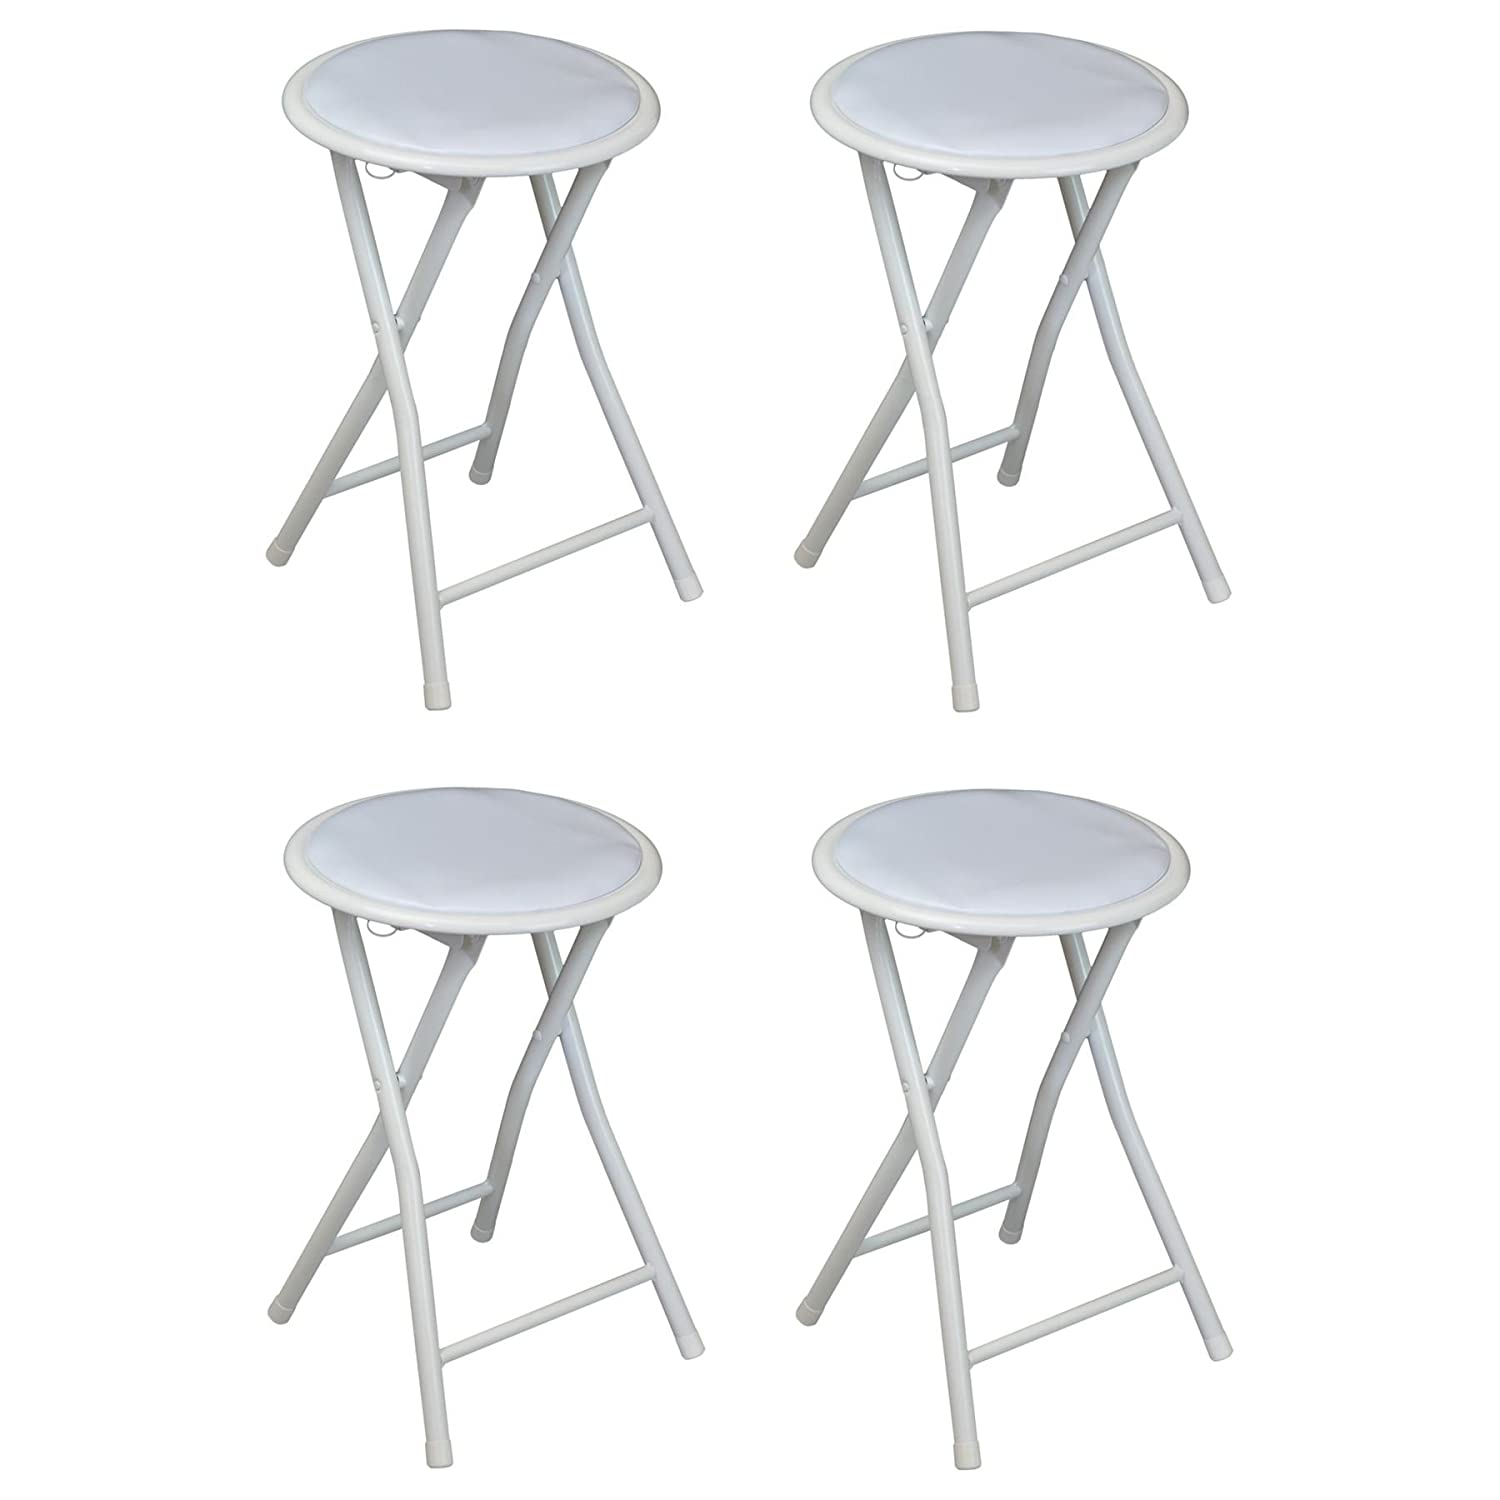 Harbour Housewares Round Compact Folding Stool - White - Pack Of 4